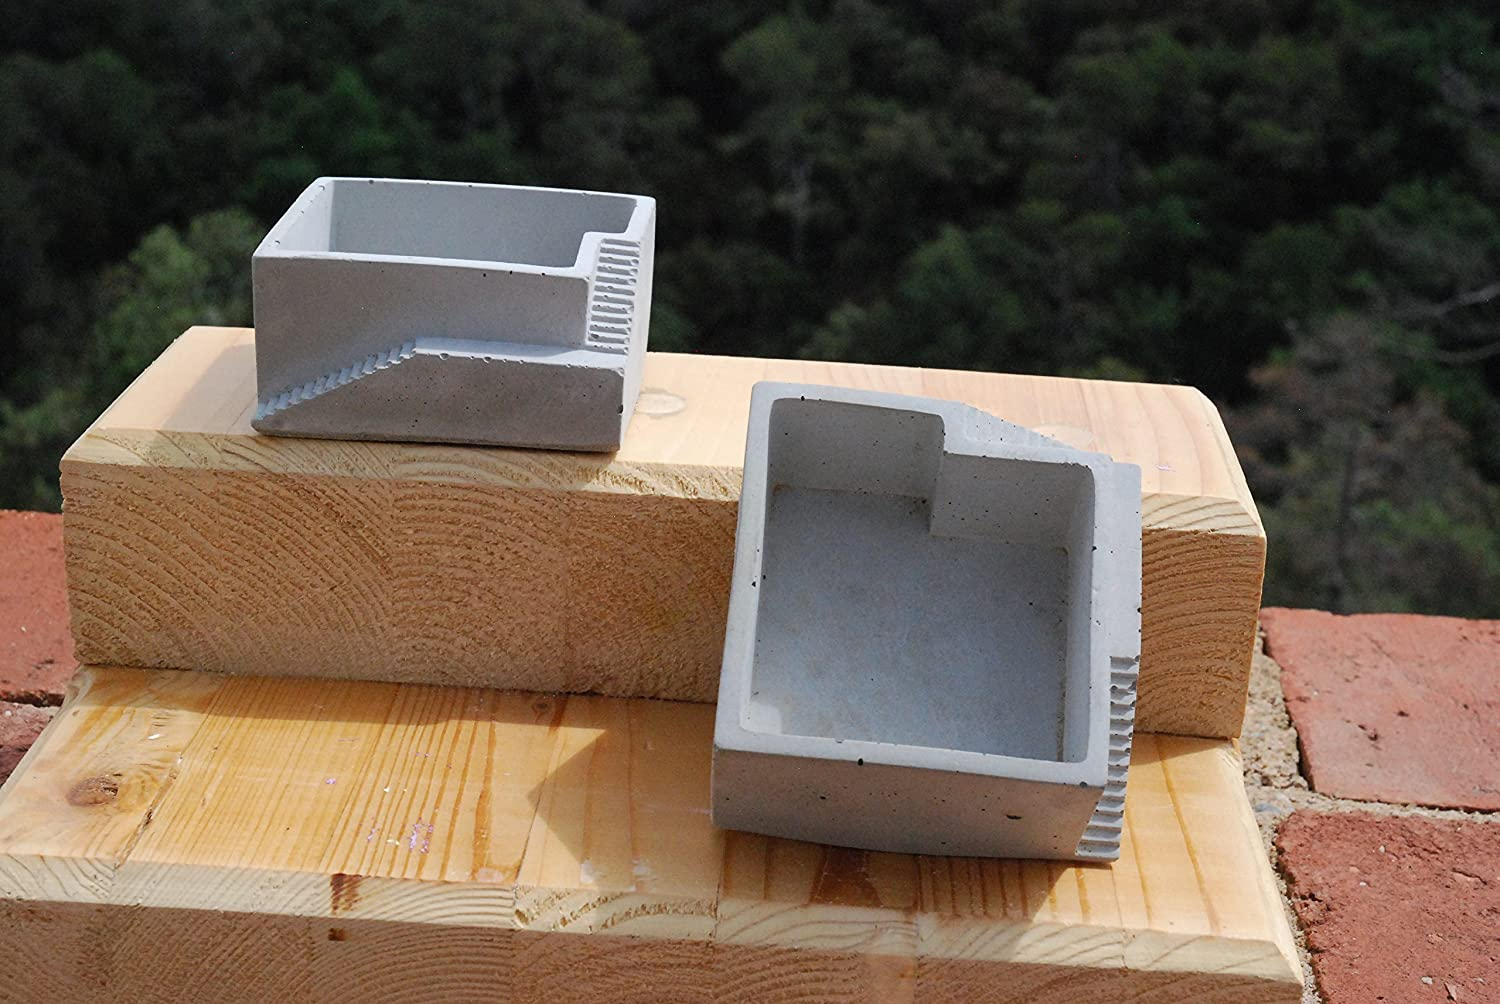 2 Pack de Porta maceta de concreto/Geometry Concret Planter Pot. NO INCLUYE PLANTA: Amazon.es: Handmade